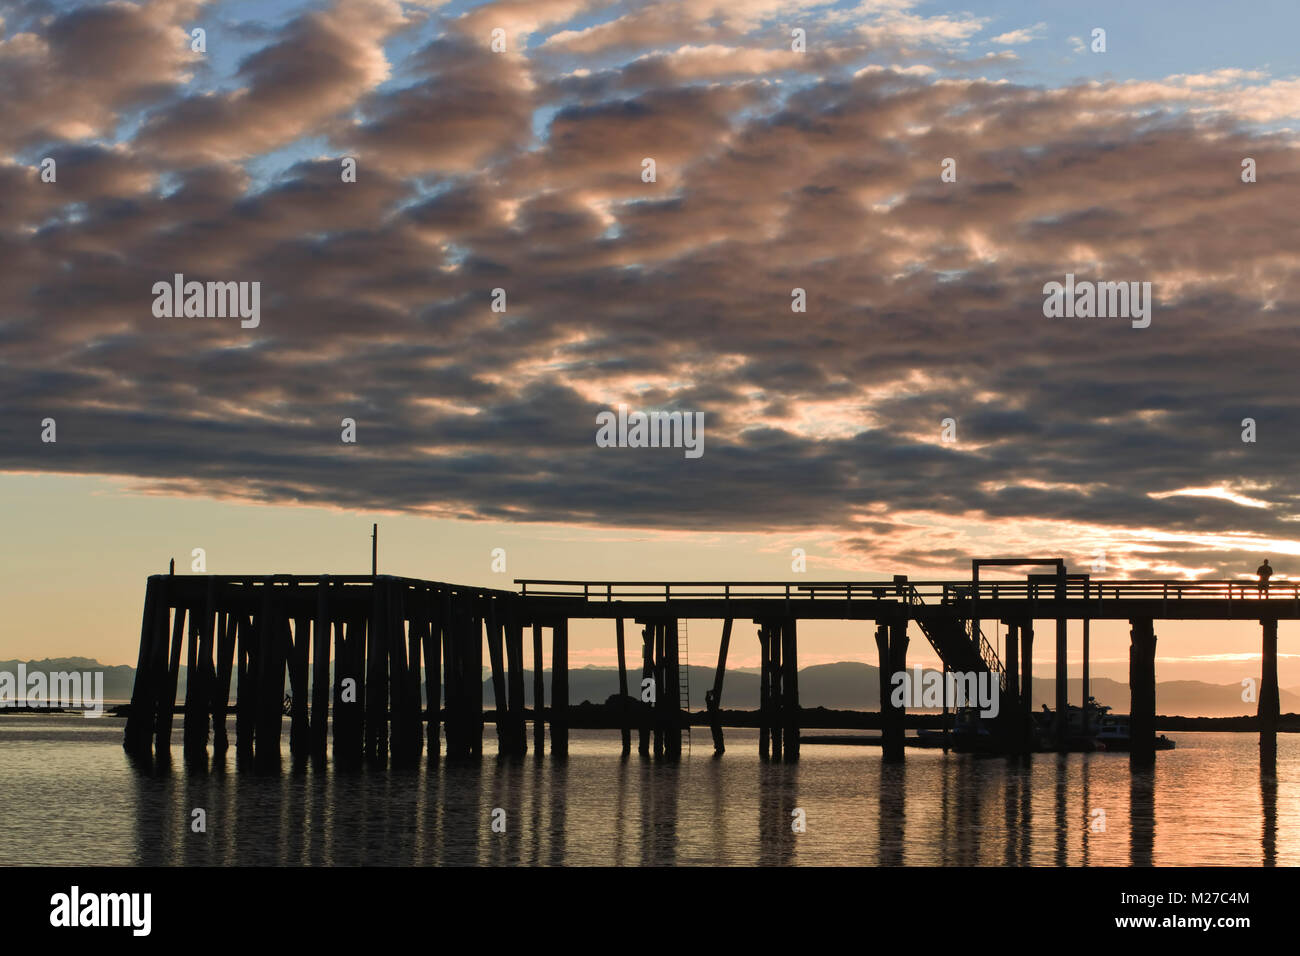 The dock at Kake, Kupreanof Island, in the Inside Passage of Southeast Alaska, in silhouette at sunset. - Stock Image